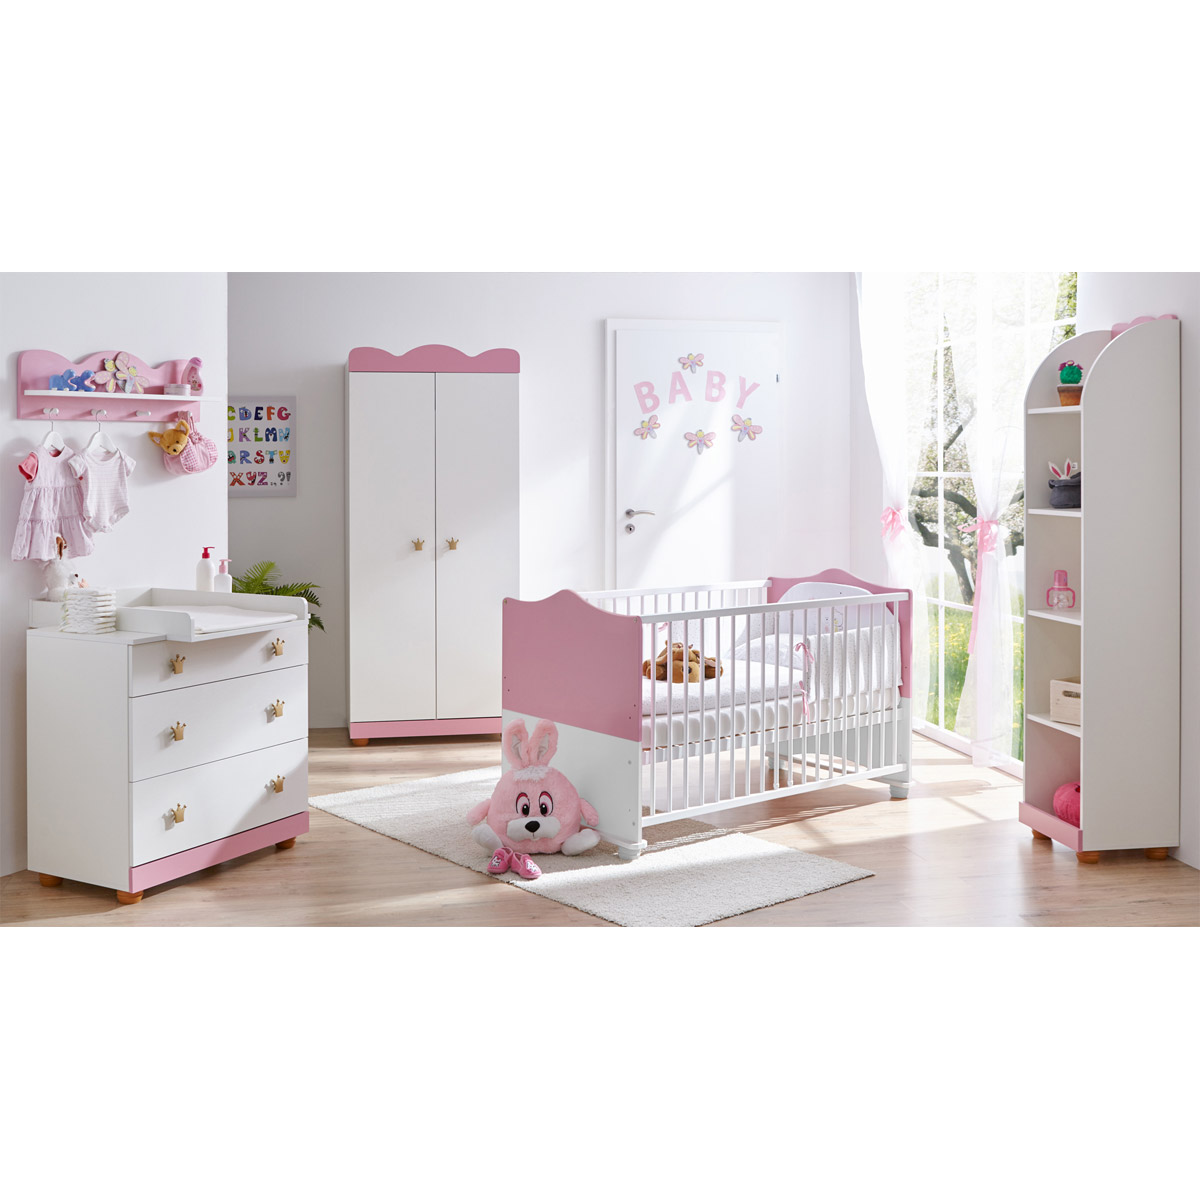 ticaa prinzessin babyzimmer wei rosa 5 teilig zum toppreis. Black Bedroom Furniture Sets. Home Design Ideas